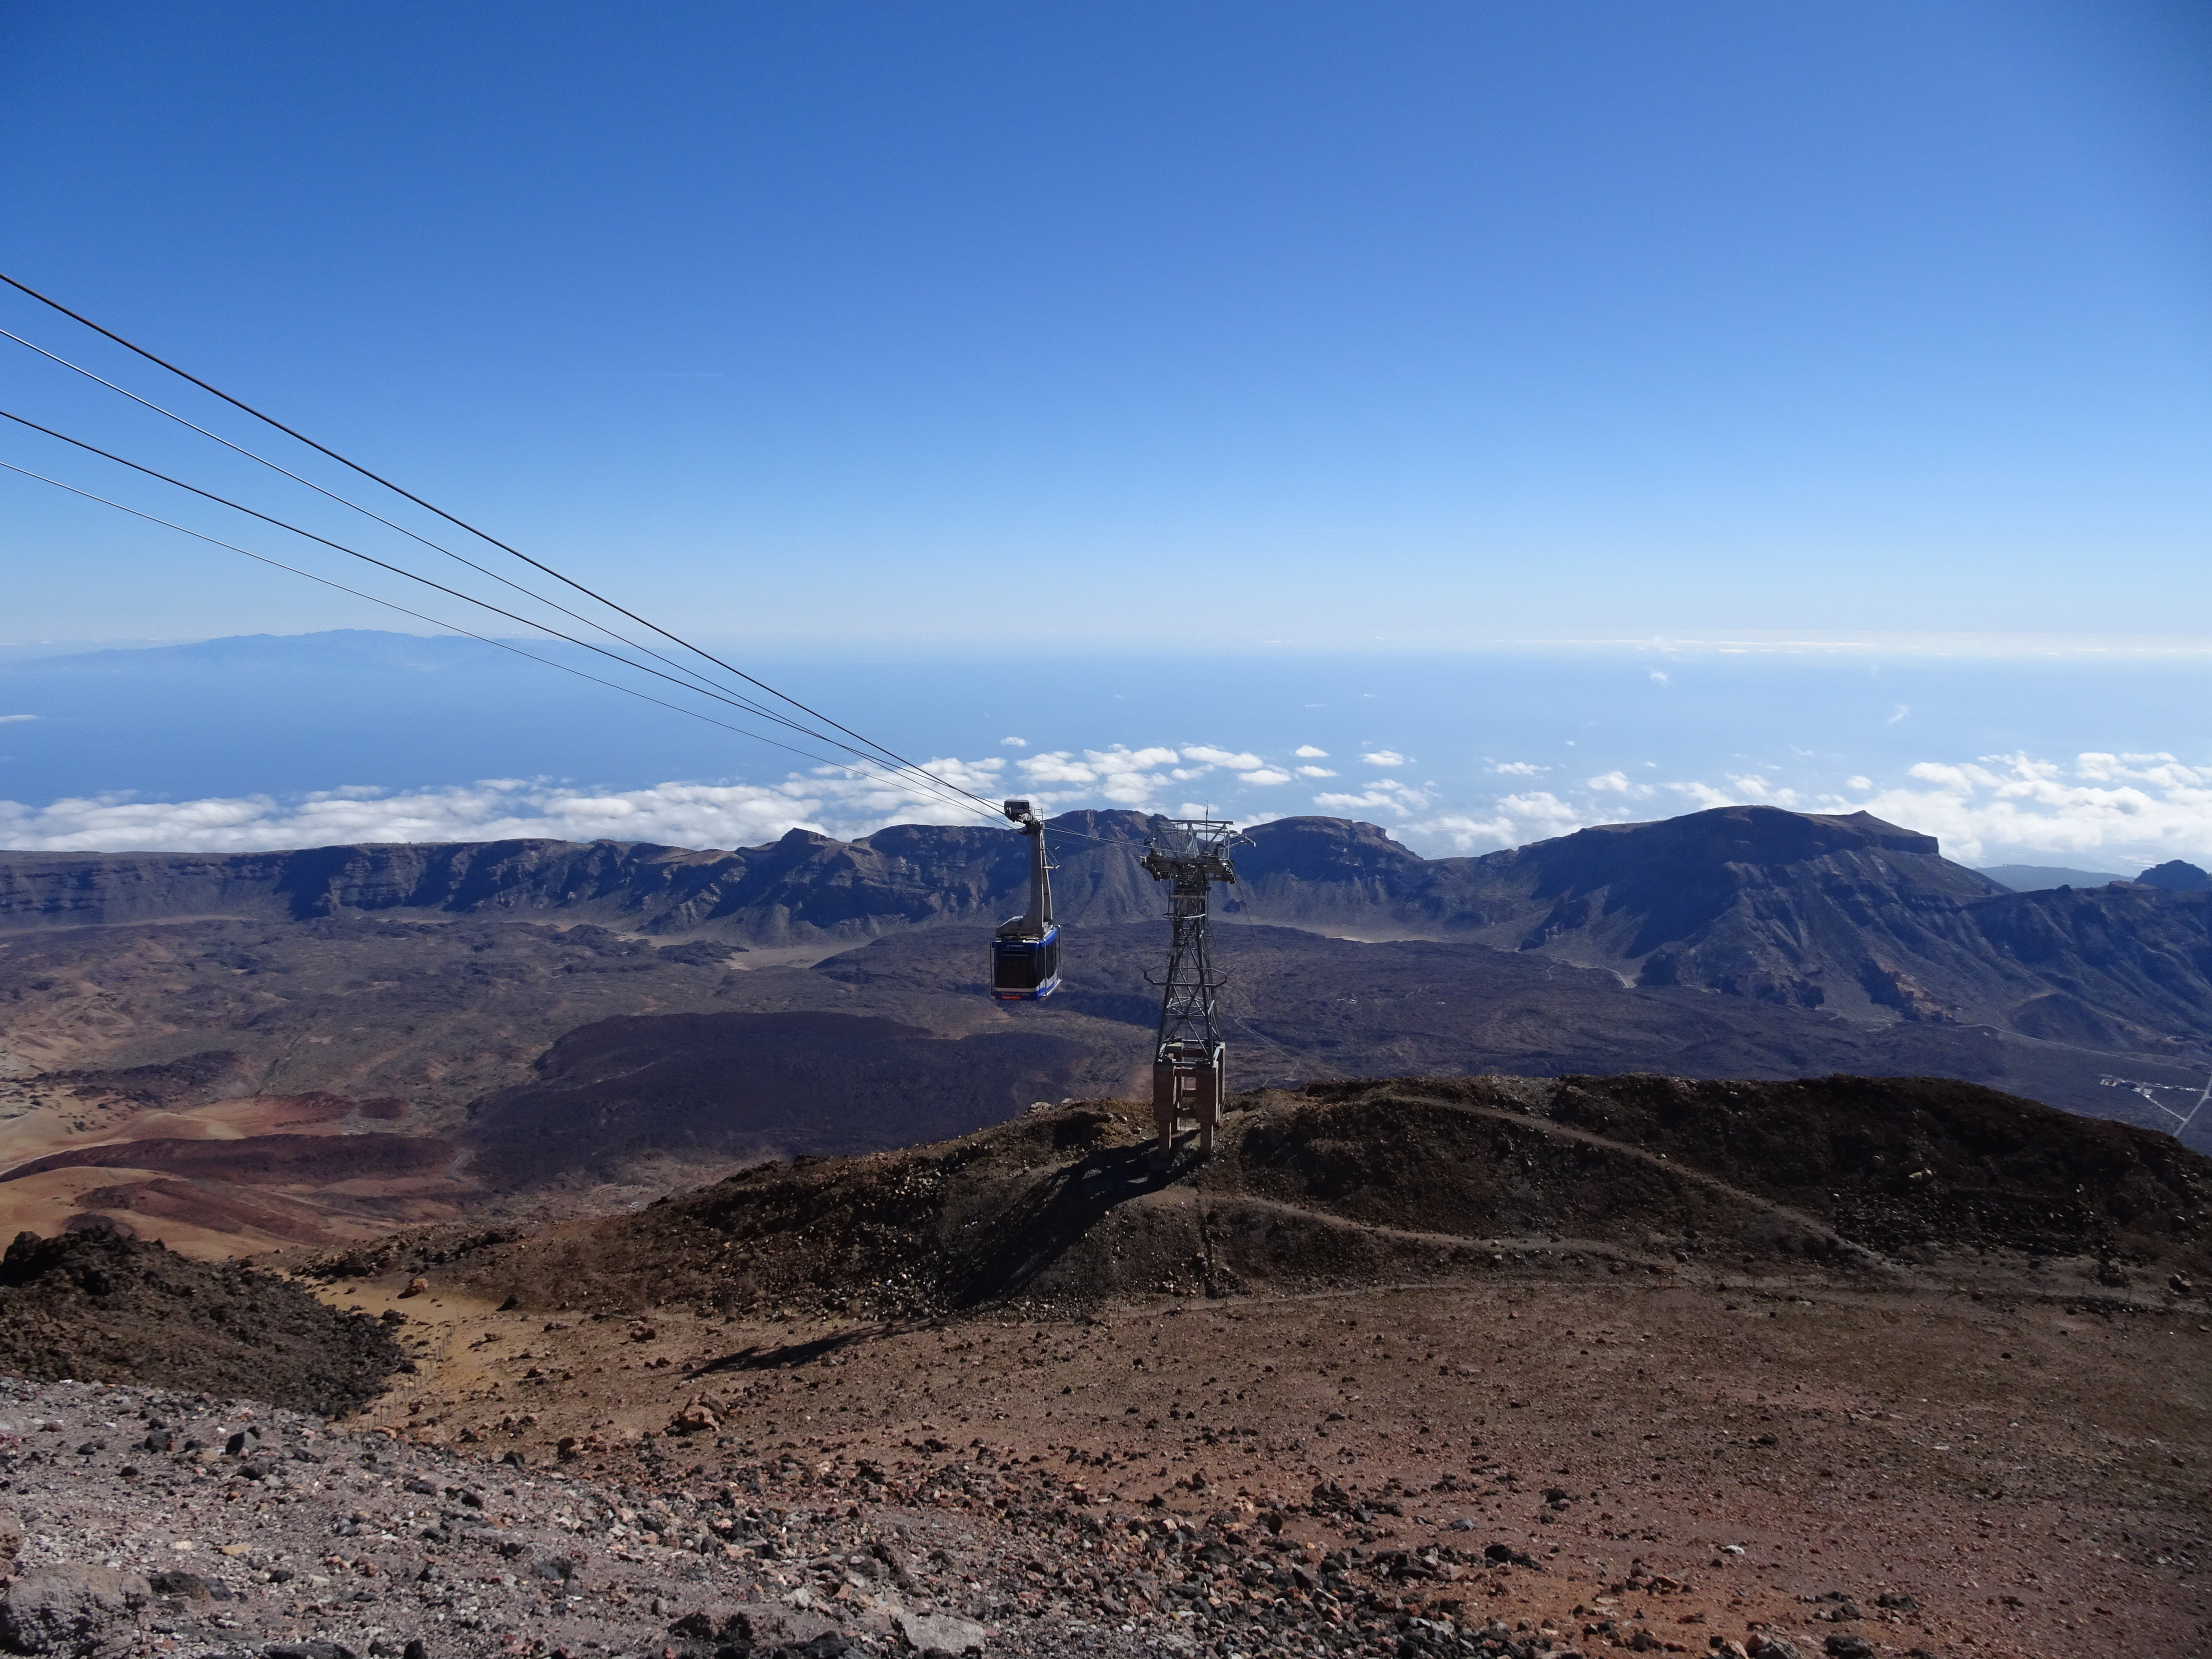 At the top pf Teide cable car